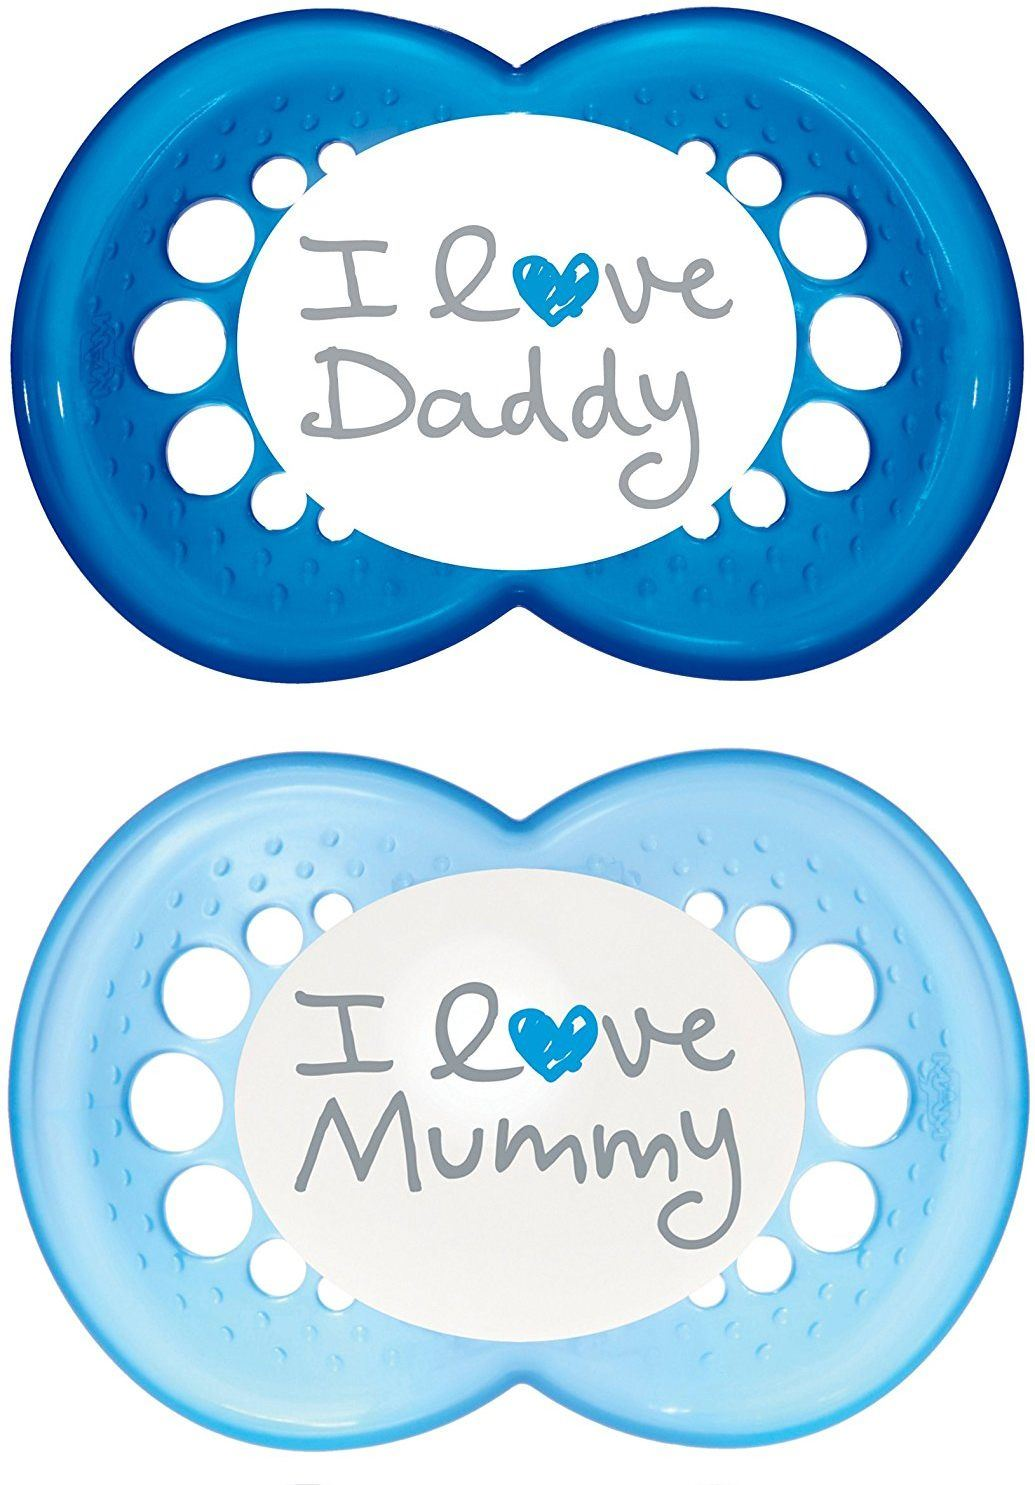 MAM-STYLE-SOOTHER-6-MONTHS-2-PACK-Baby-Toddler-Soother-Dummy-Blue-Pink-BN